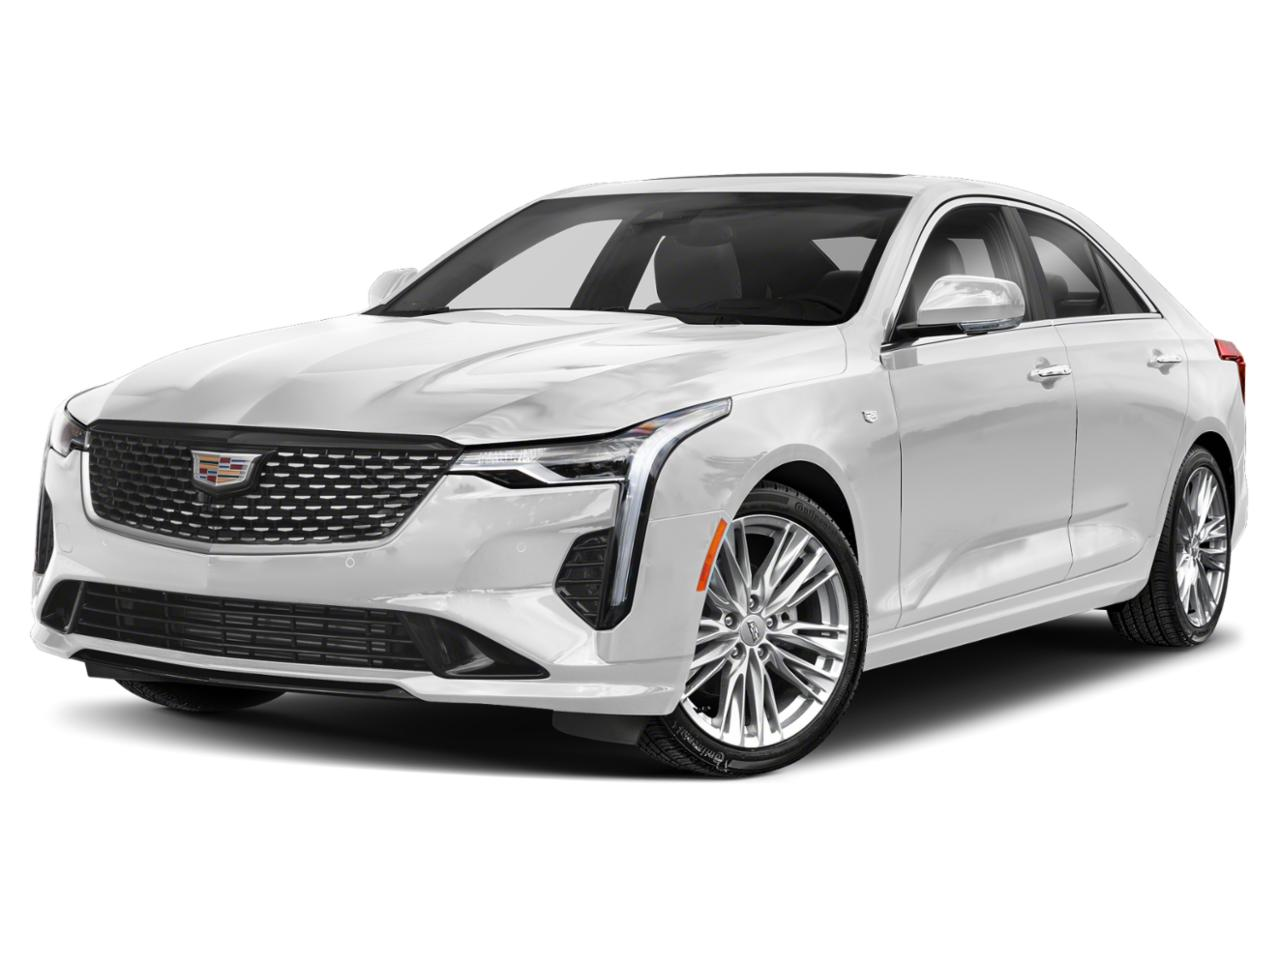 2021 Cadillac CT4 Vehicle Photo in Ocala, FL 34474